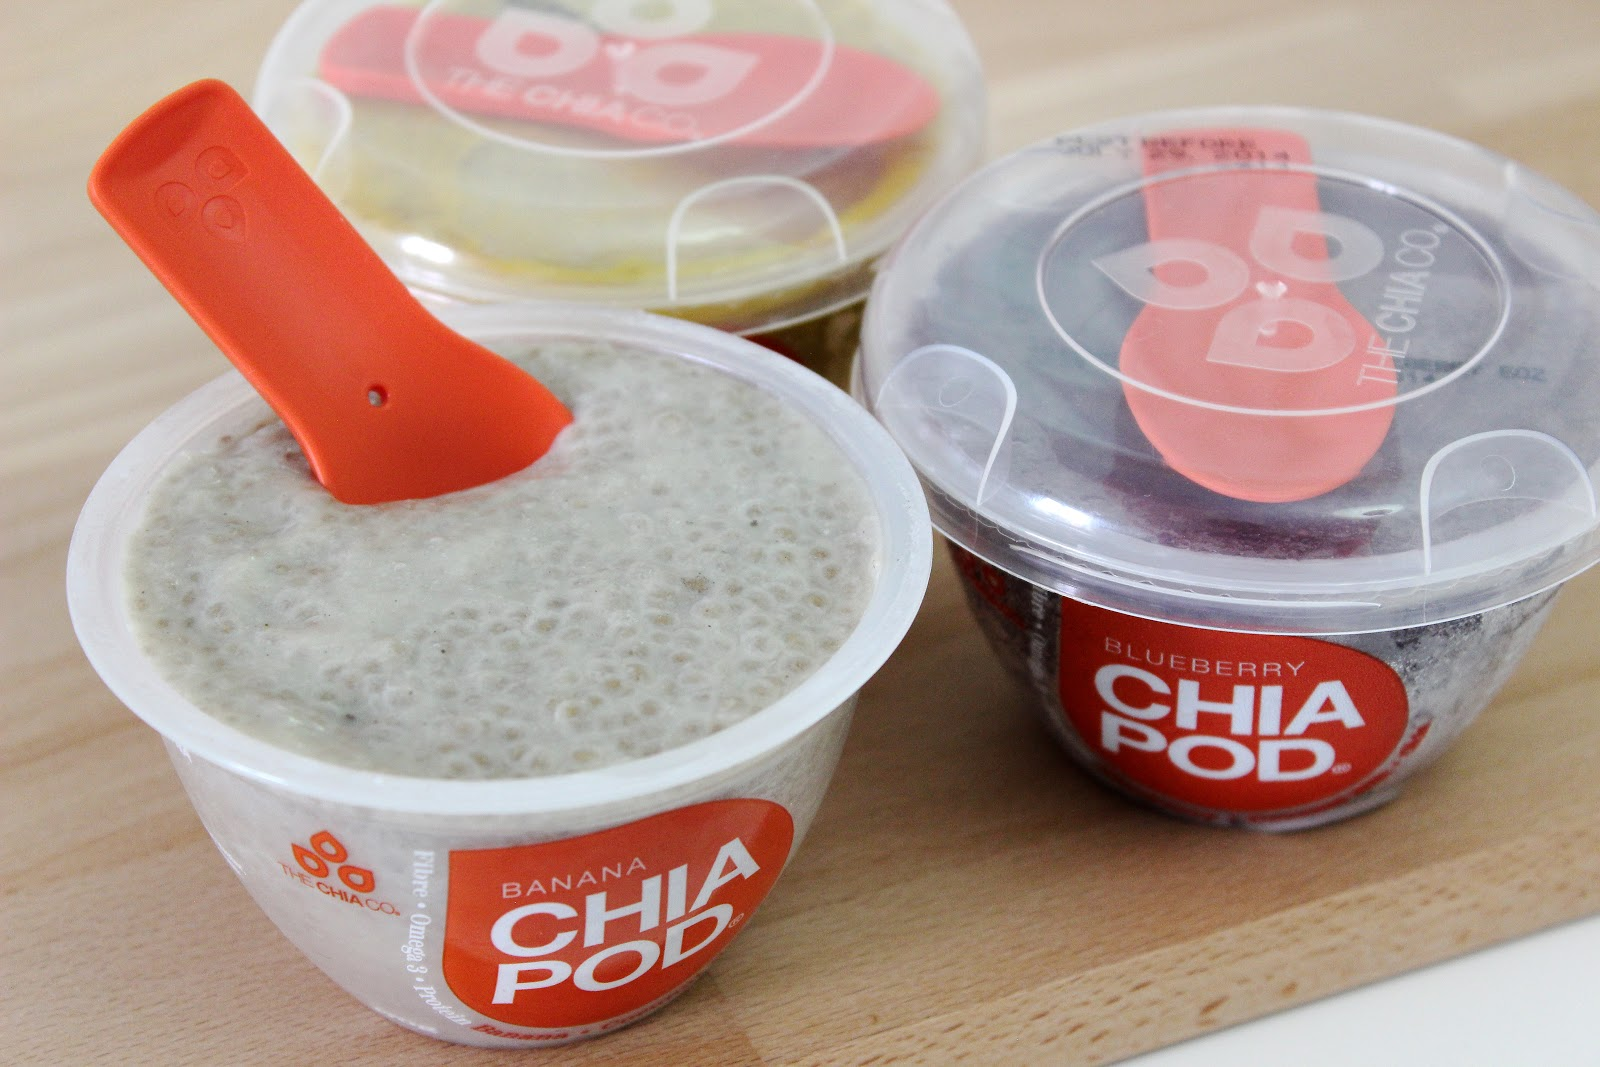 The Chia Company Chia Pod